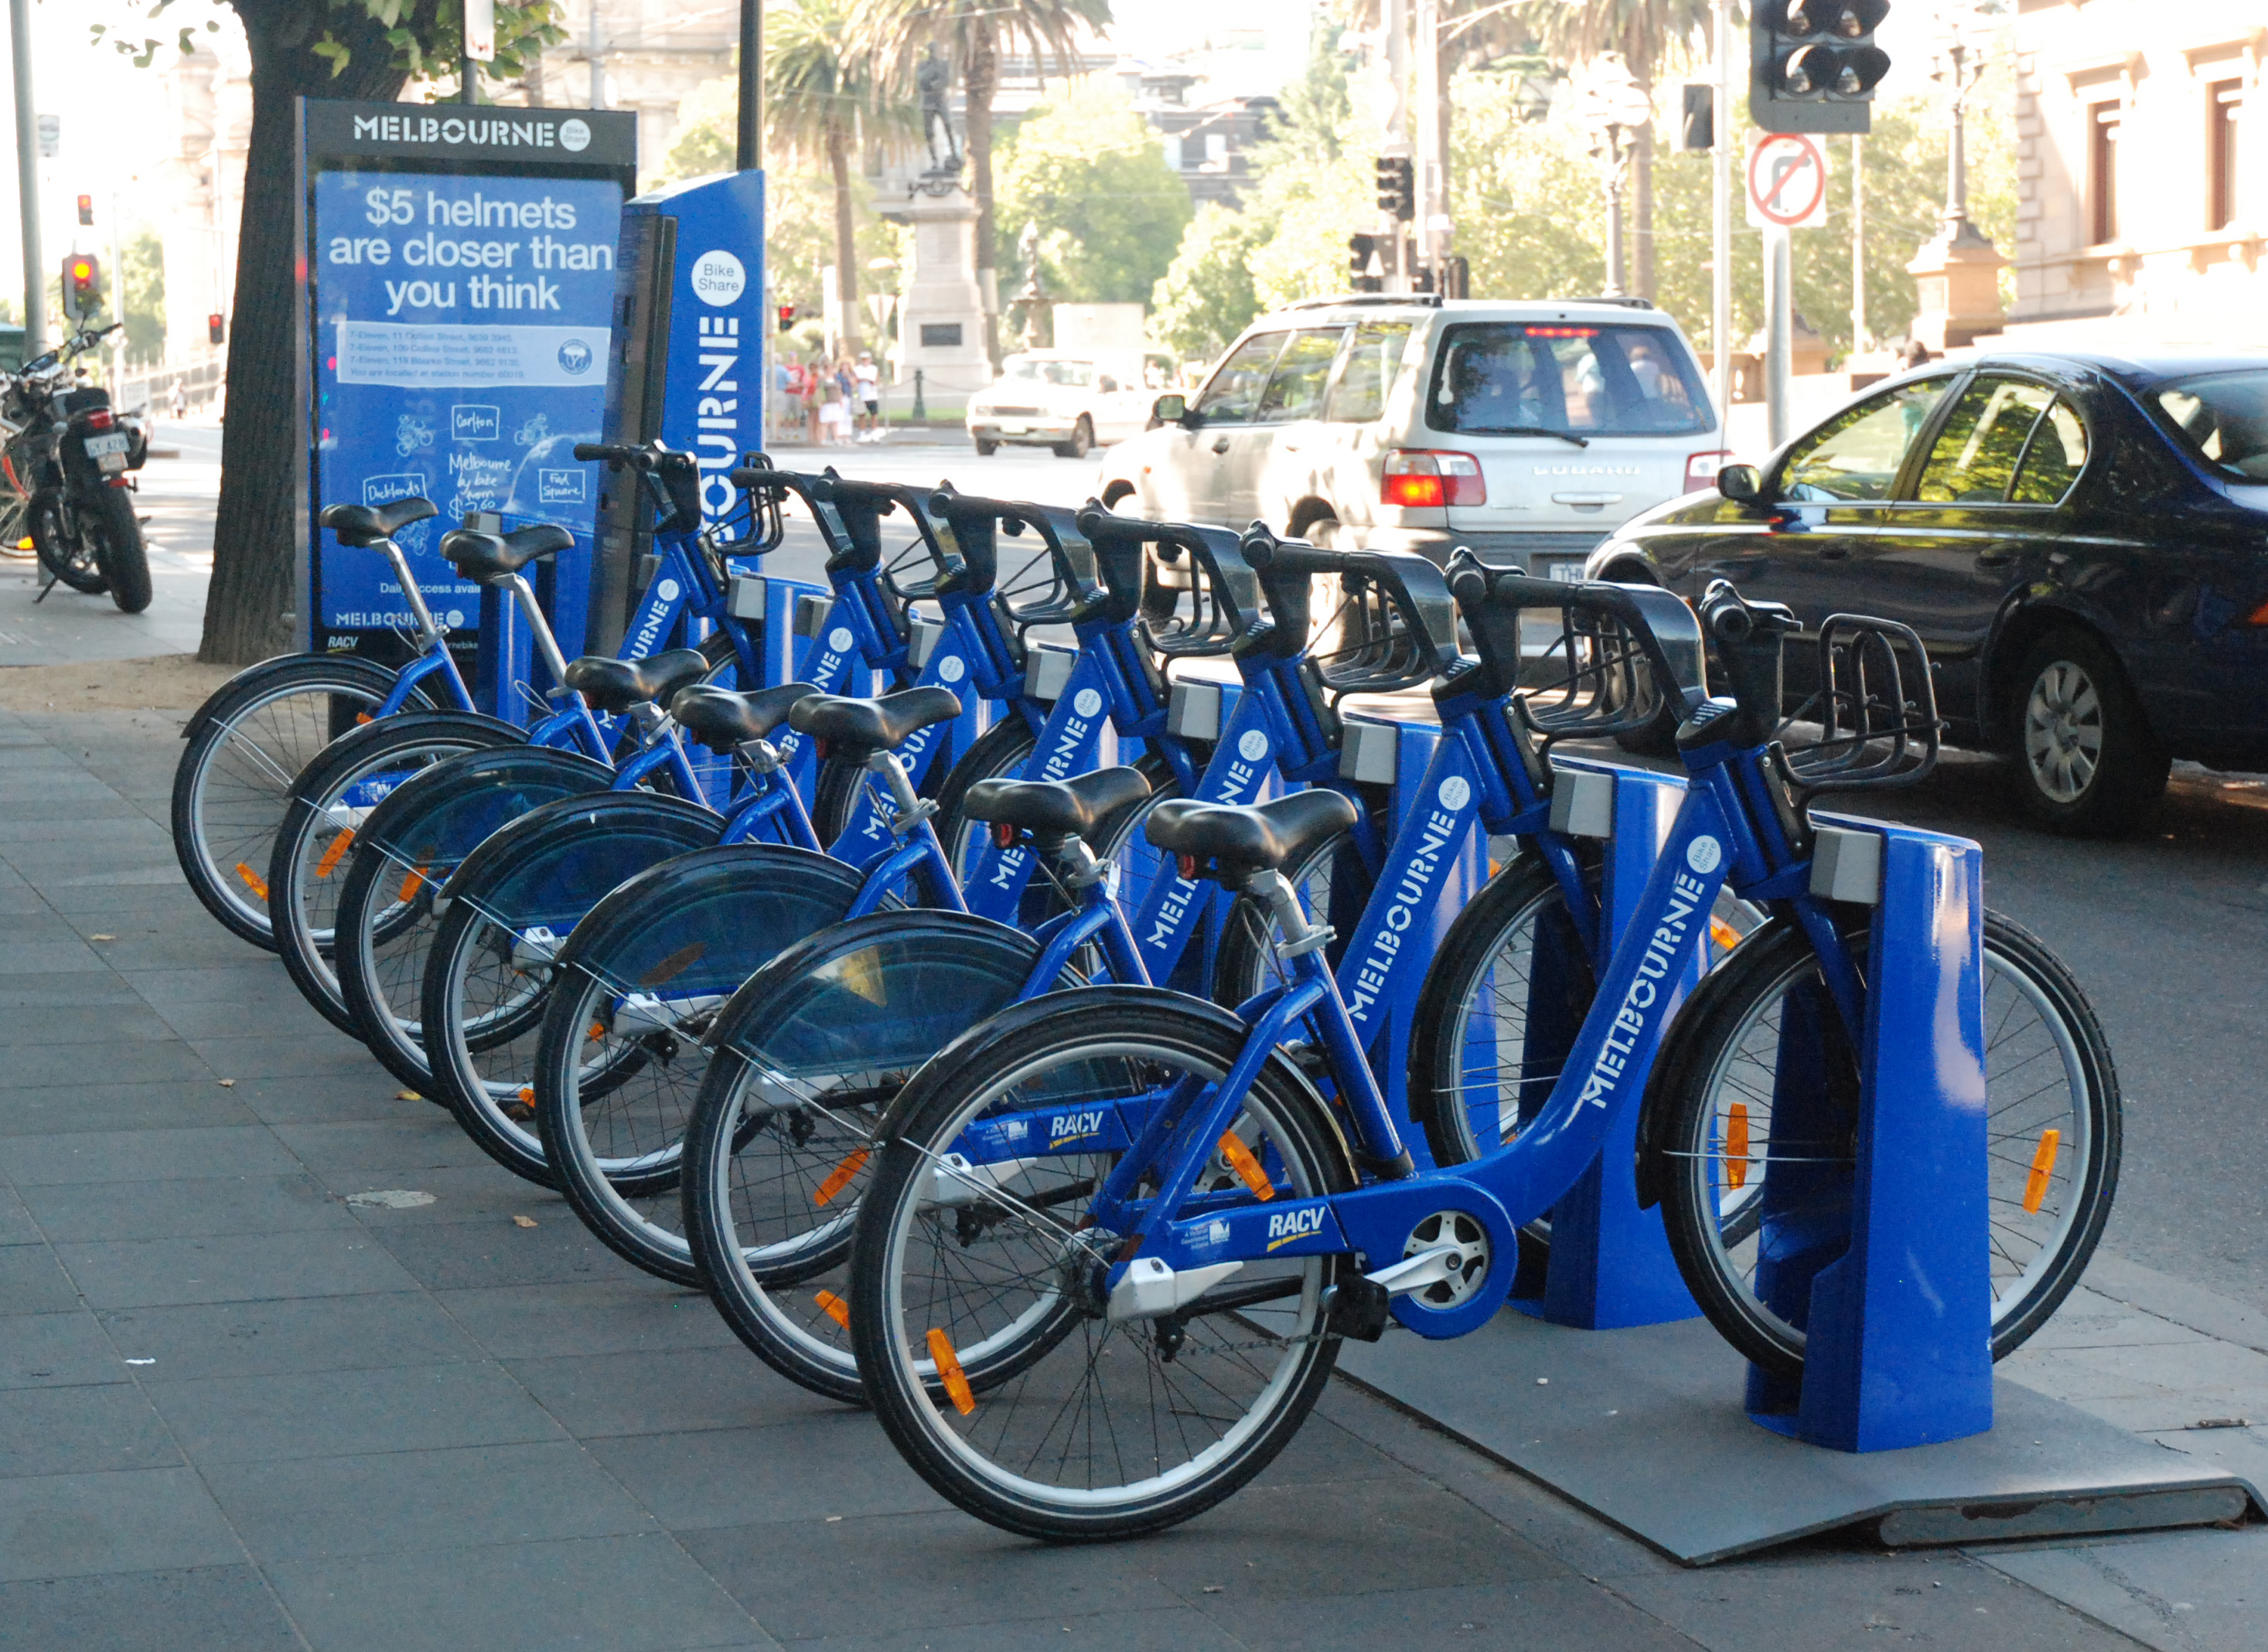 Bike Stores In New York Metro Area A bicycle sharing station in